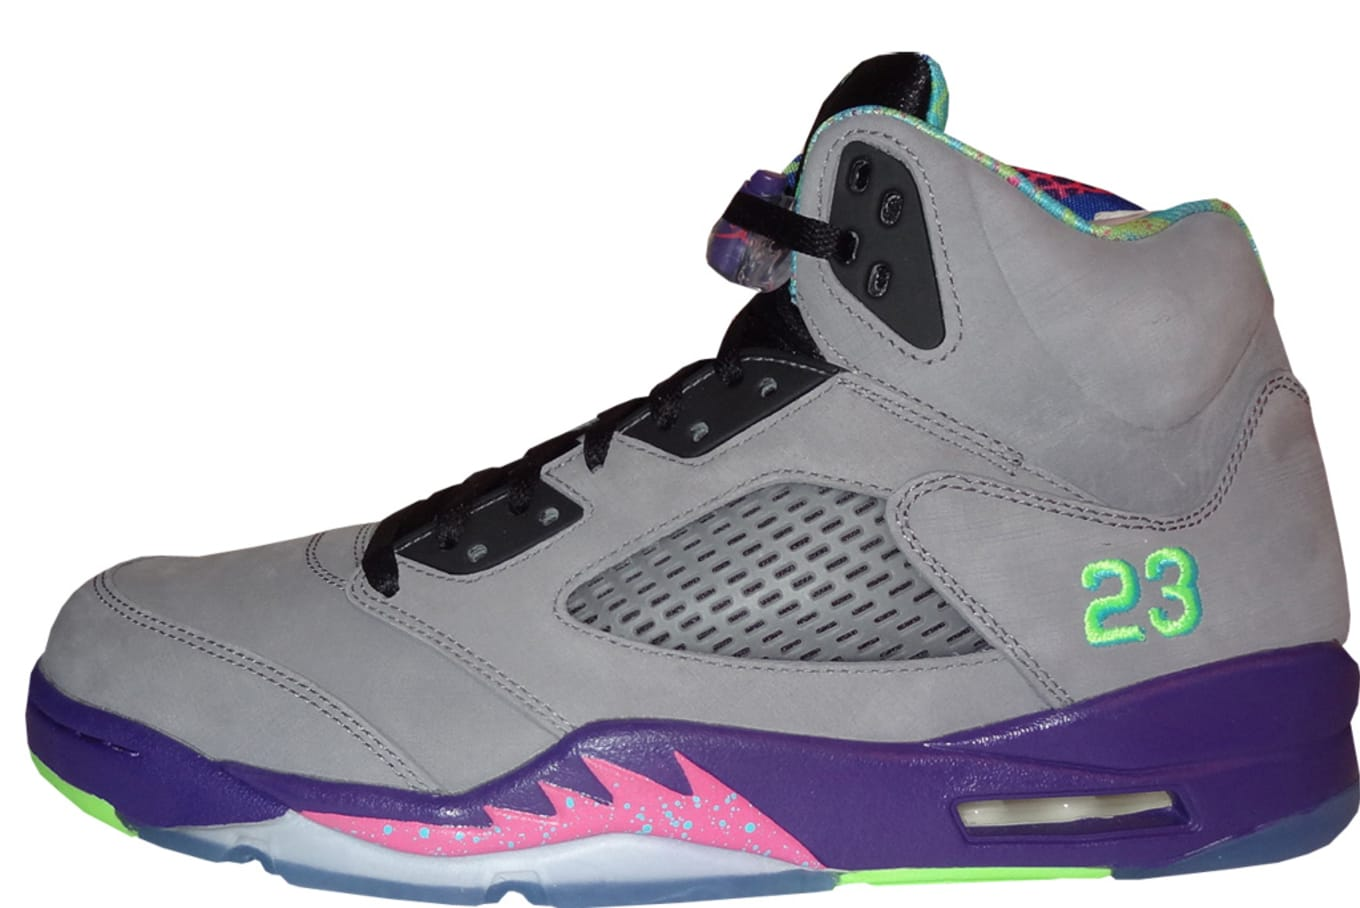 big sale 52747 8cbef Air Jordan 5 Retro Bel Air  Fresh Prince